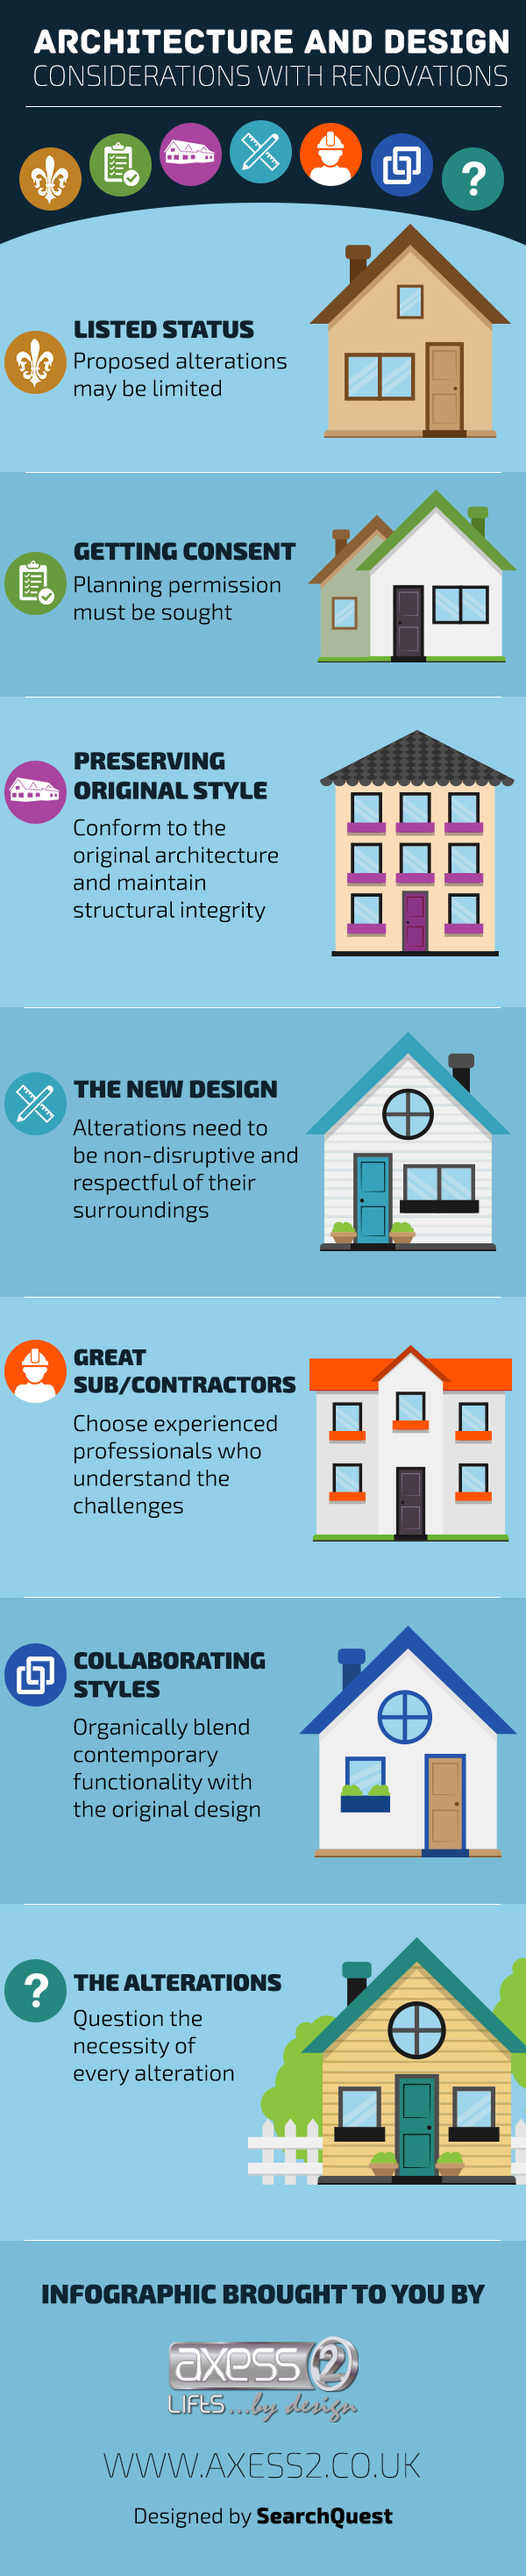 infographic Considerations with renovations - Architecture and Design: Considerations with Renovations (Infographic)